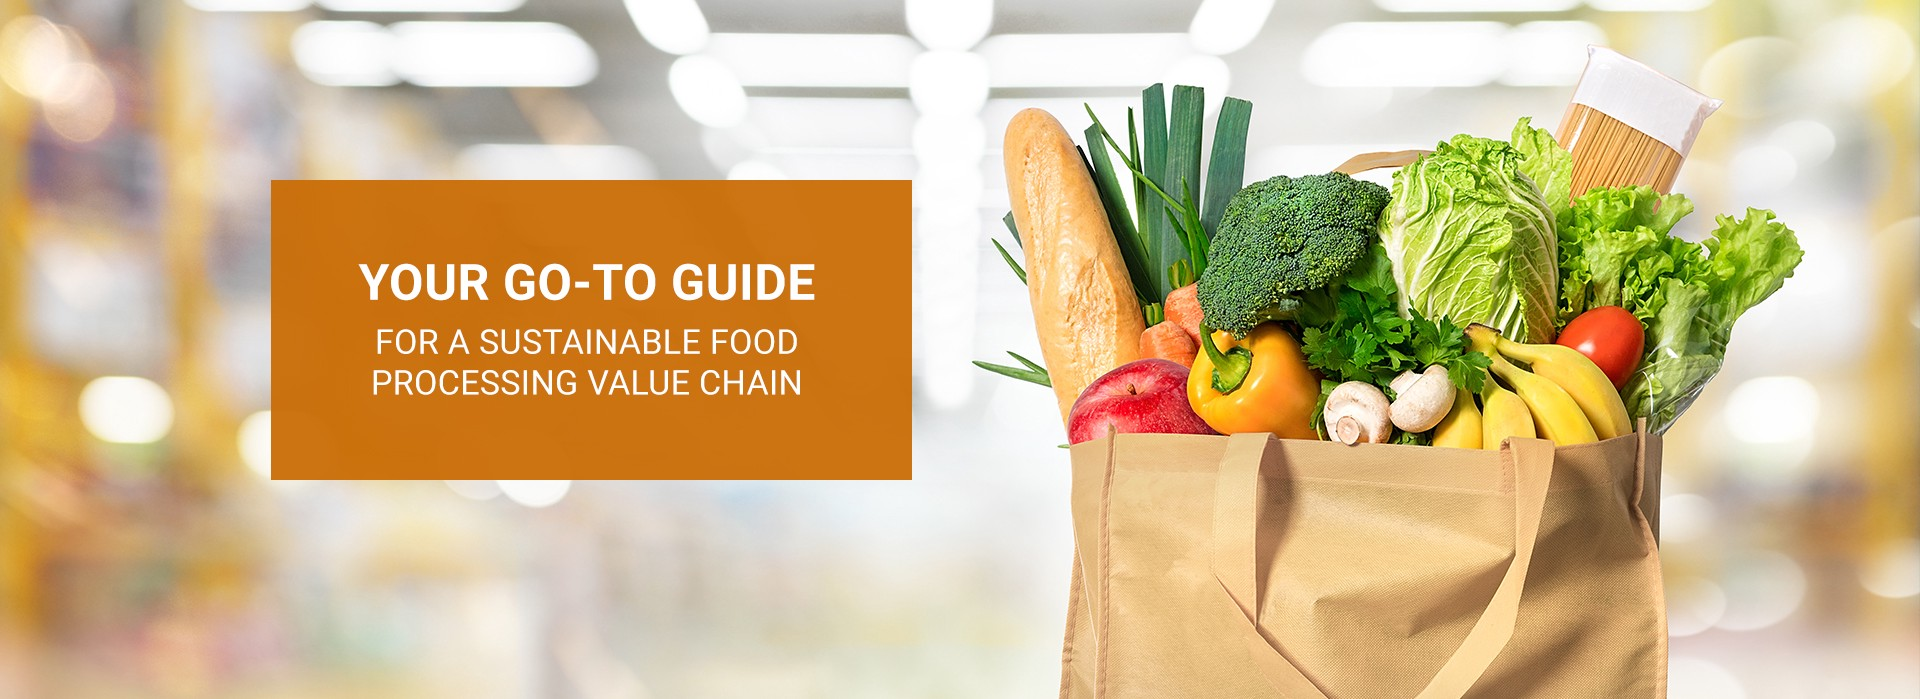 """Banner Image: """"Your go-to guide for a sustainable food processing value chain"""""""